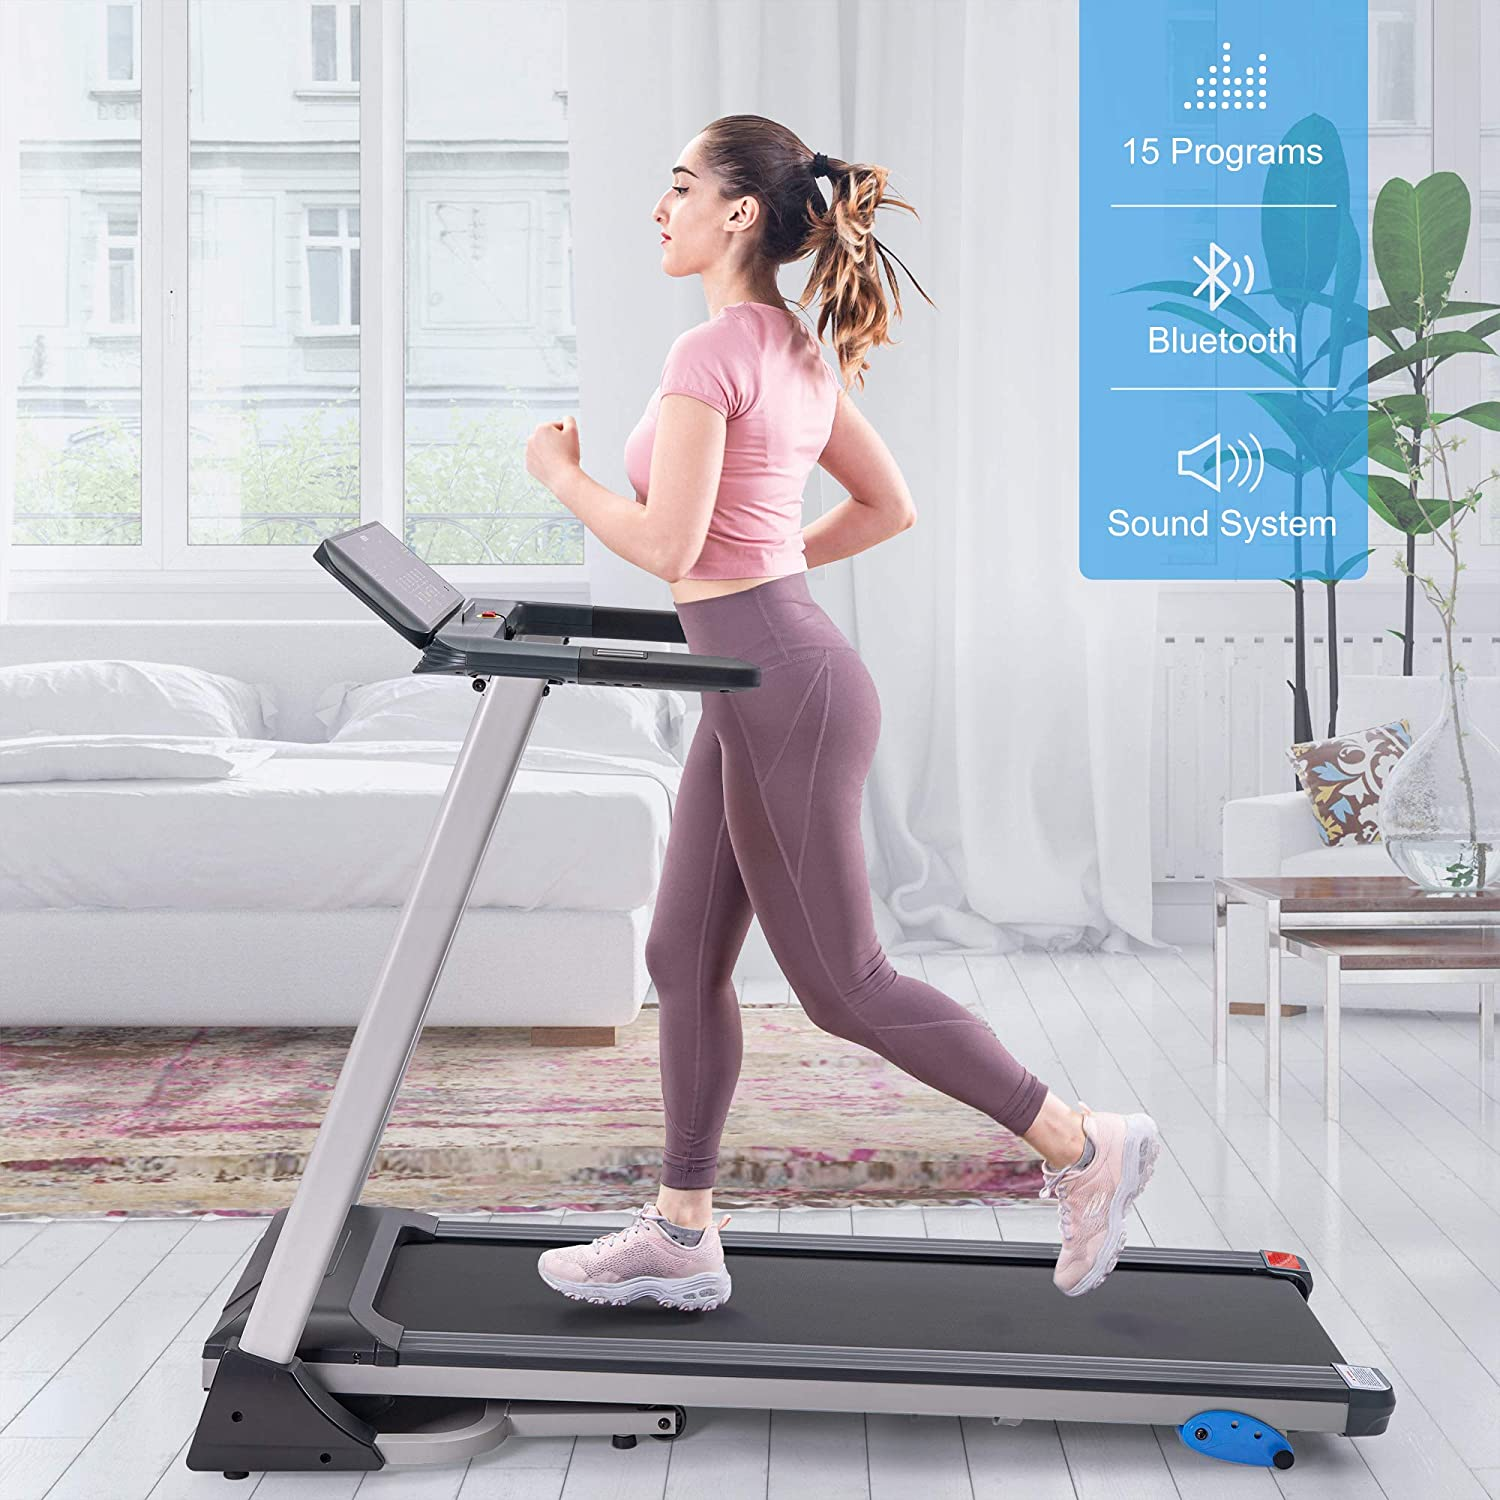 Top Best Treadmills Under $600 | Reviews 2020 | How To Choose